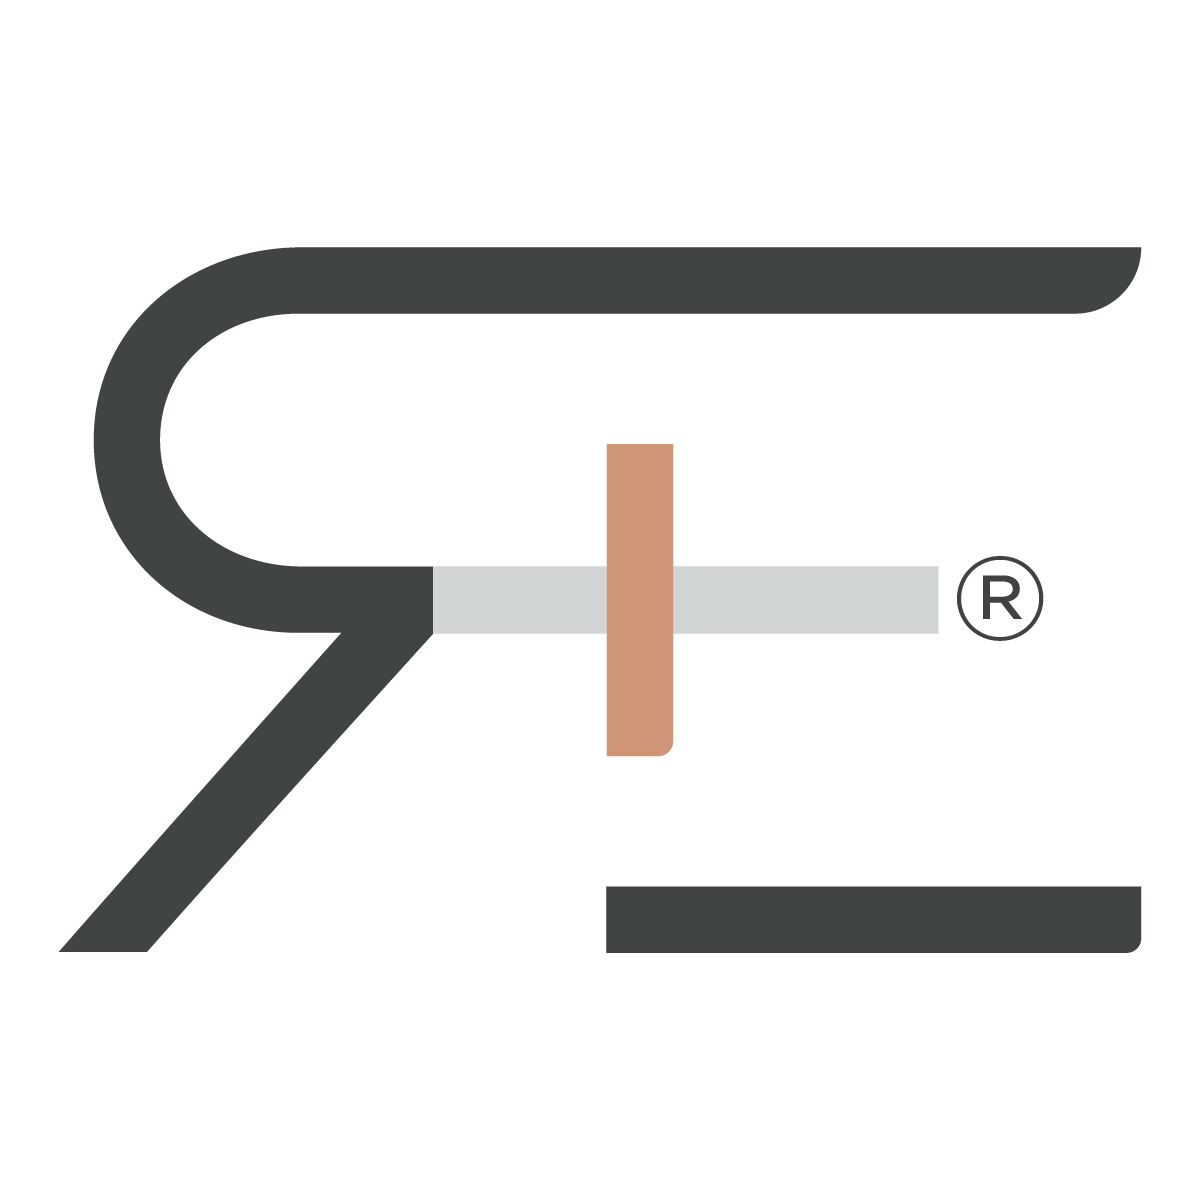 Racial Equitecture logo for anti racism programs by The Equitect company